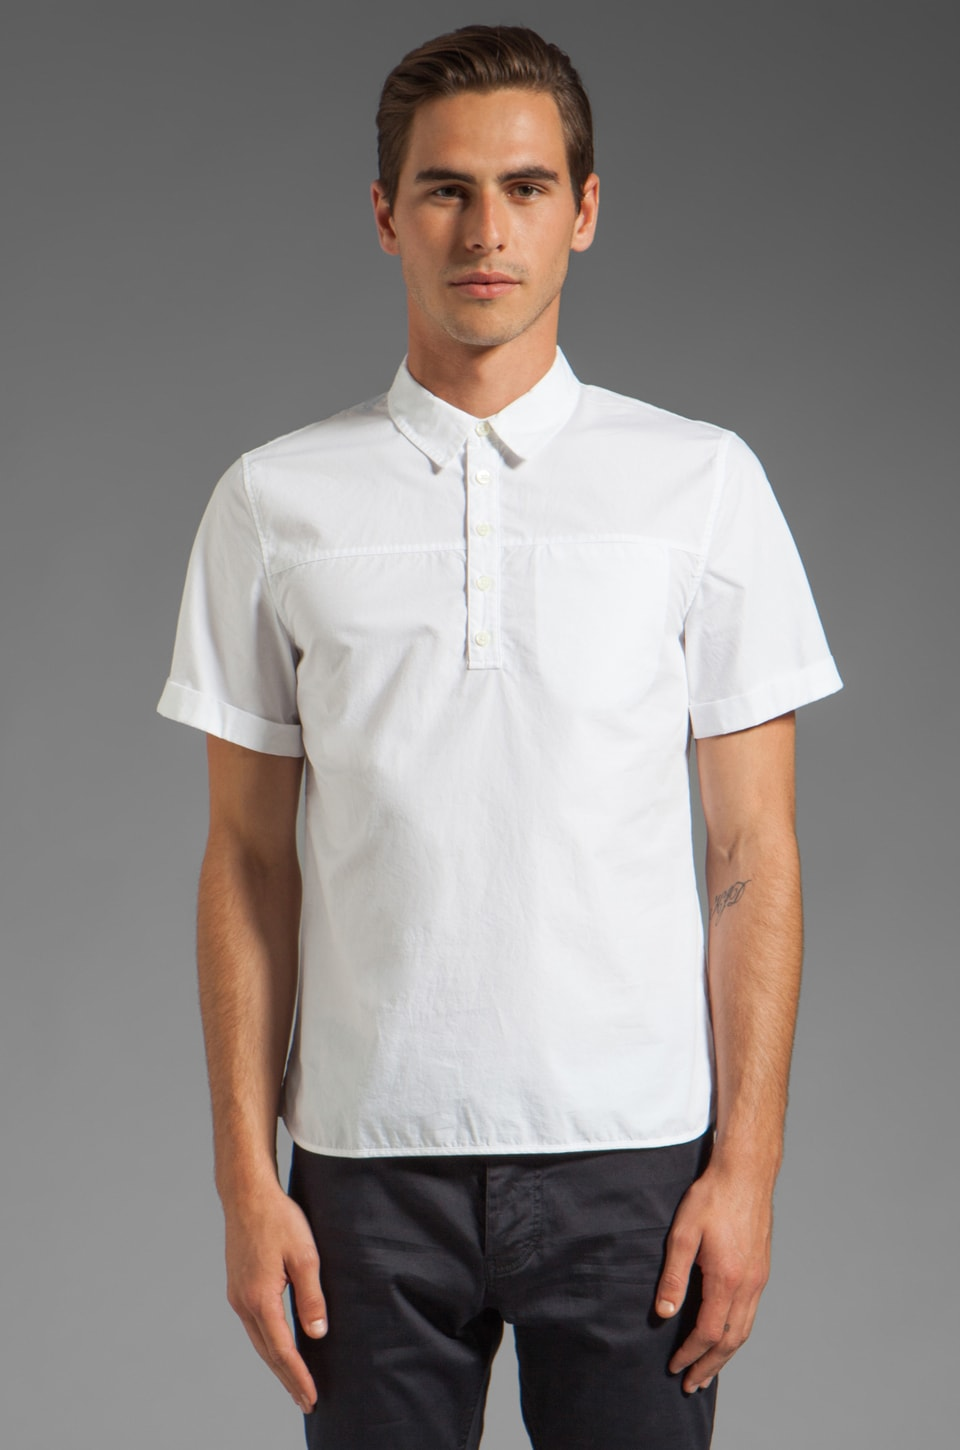 Closed Palmdale Poplin Shirt in White/Beige